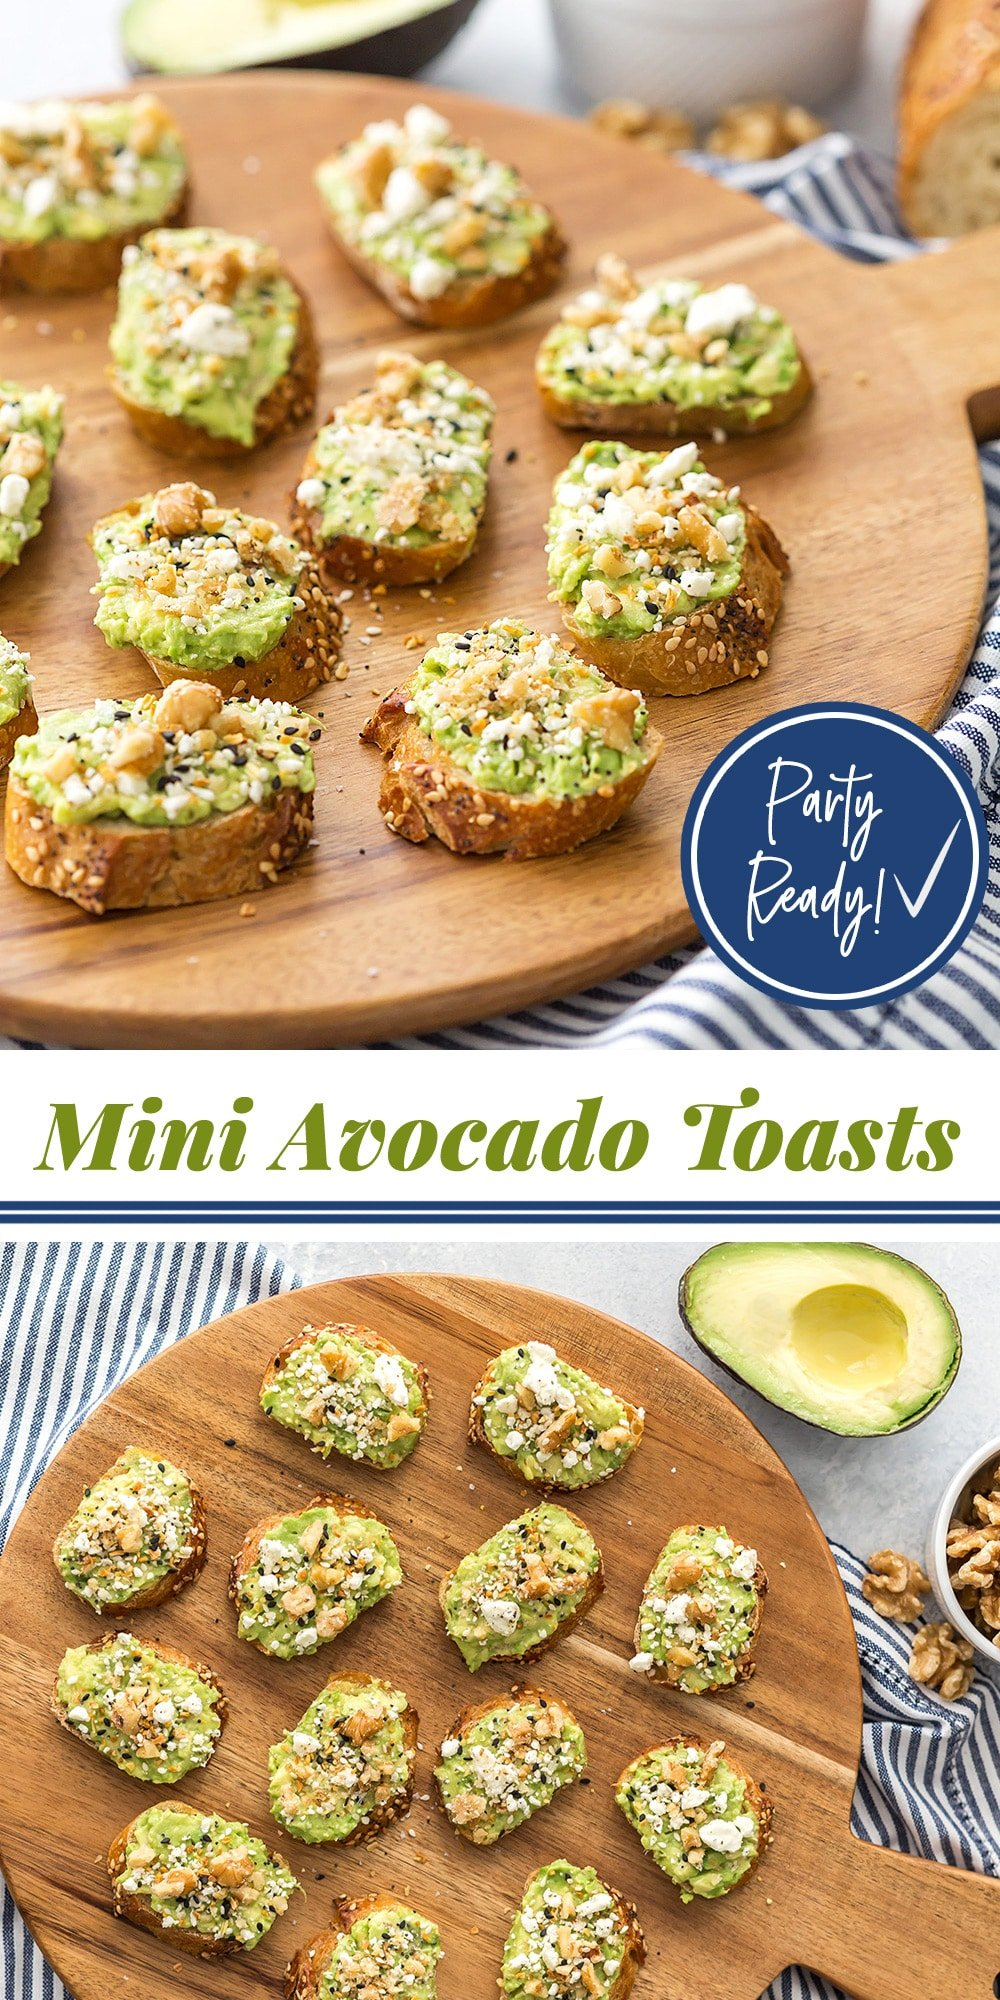 Appetizer Mini Avocado Toasts